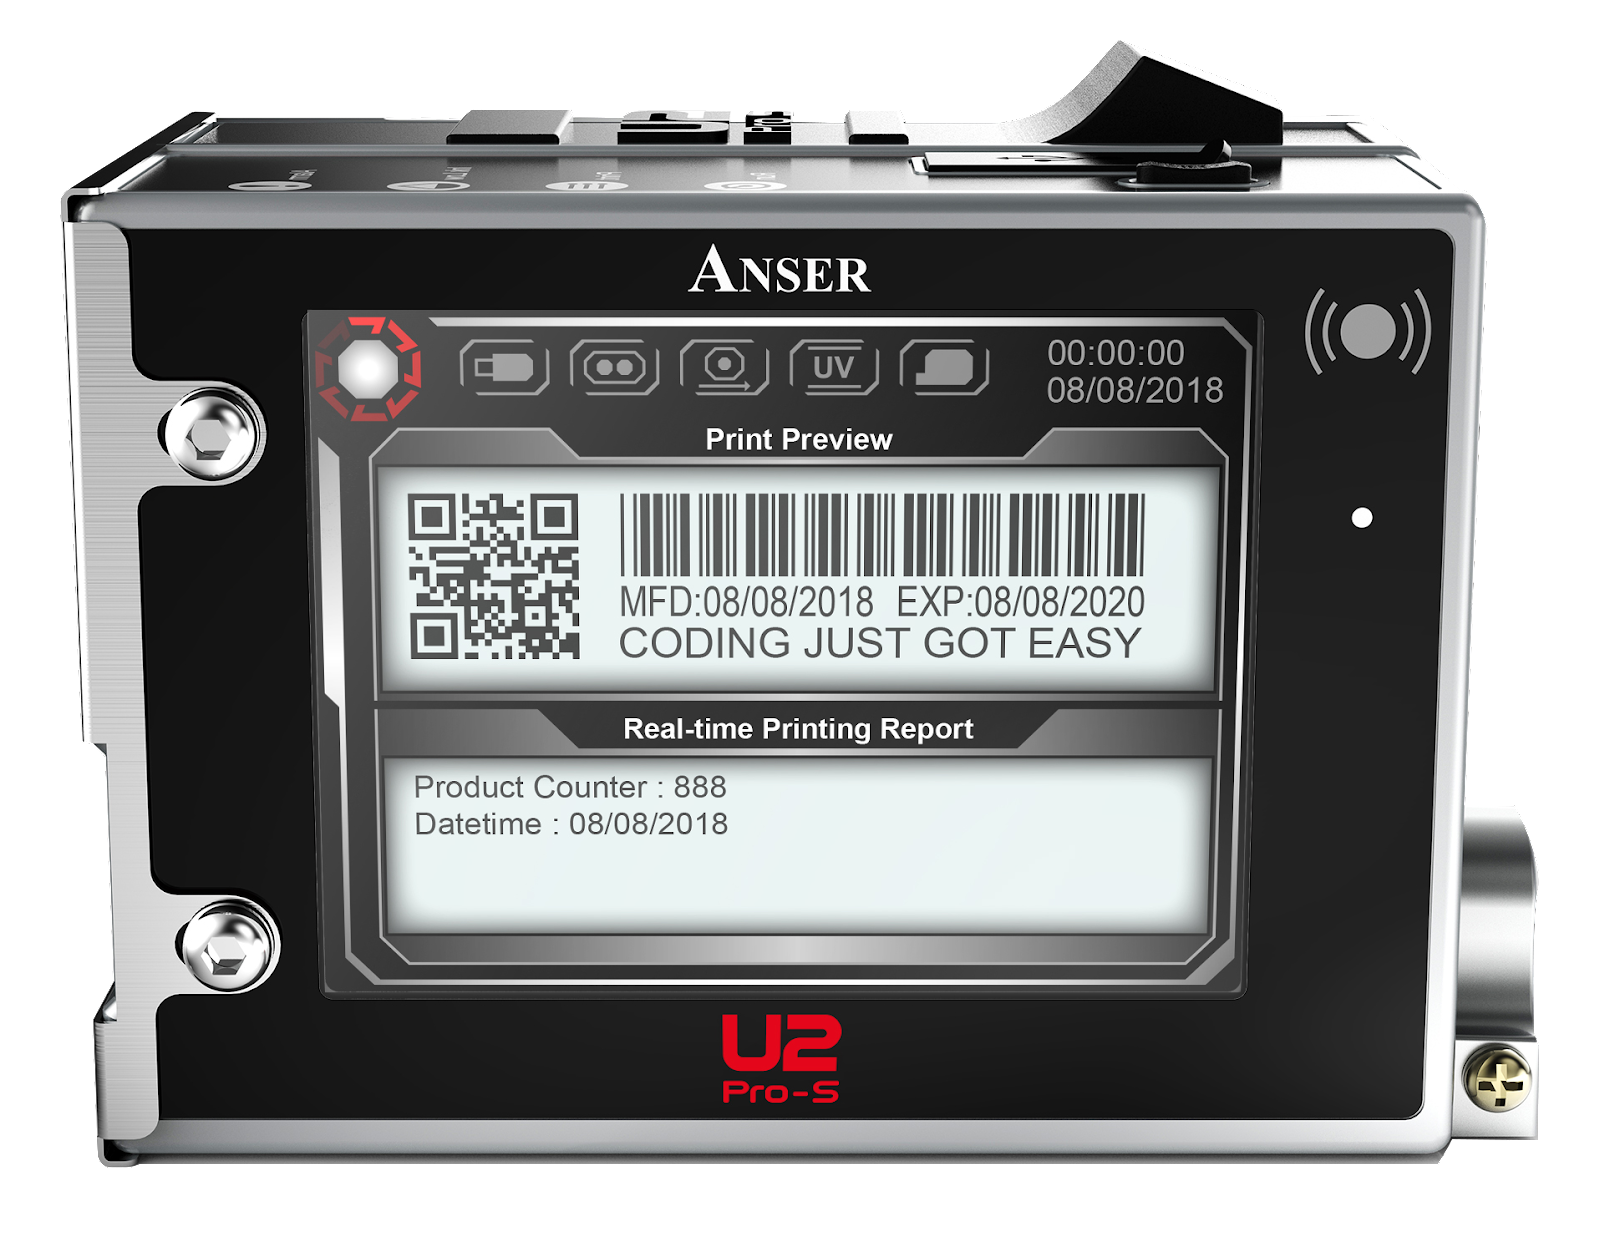 The TIJ Option: Anser U2 Pro-S